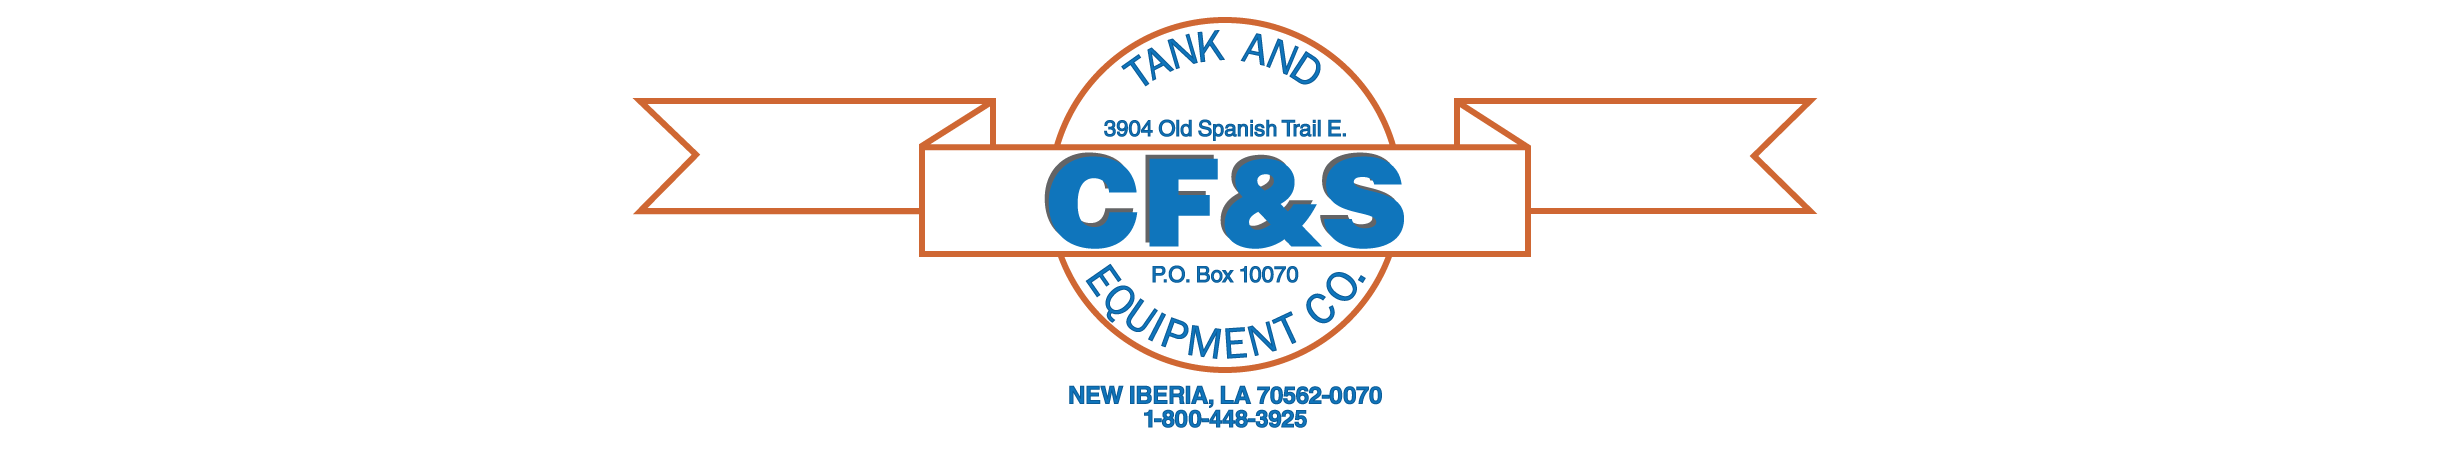 CF&S Tank & Equipment Co.